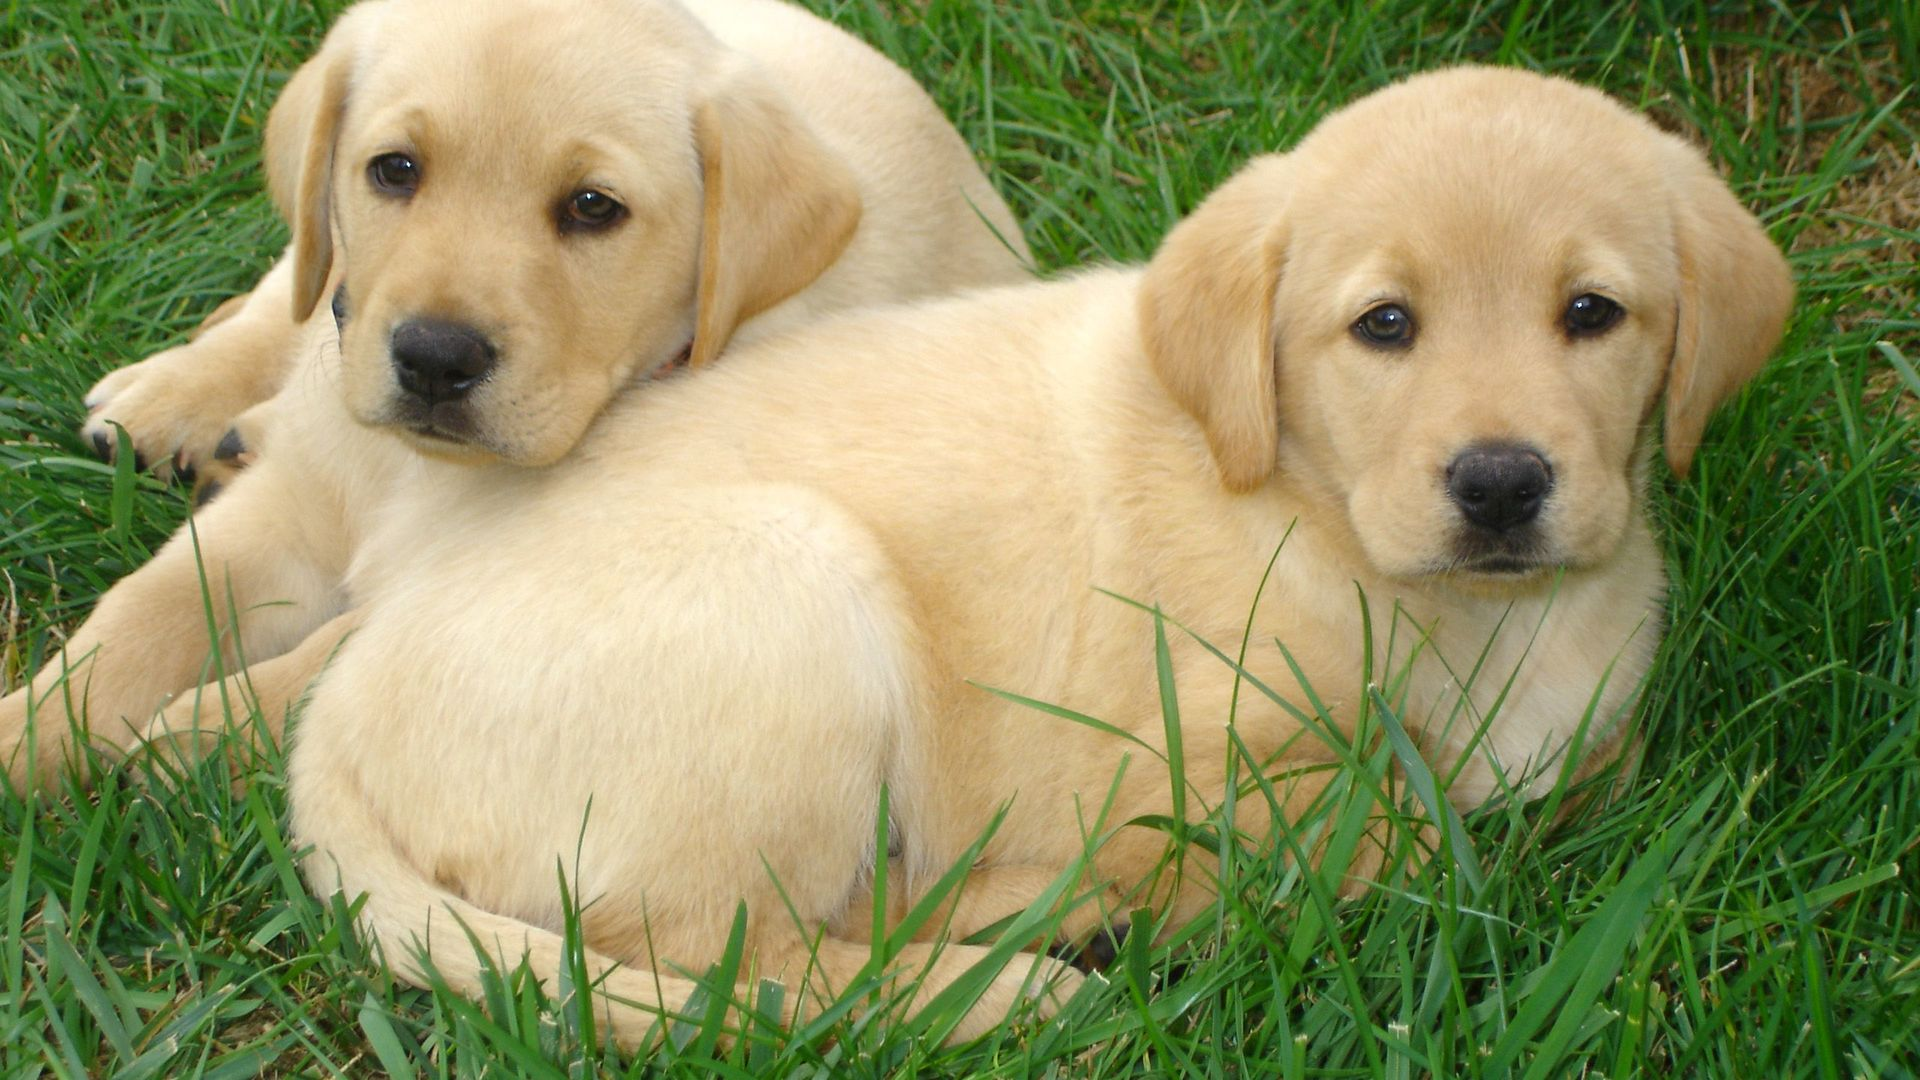 Cute Dogs And Puppies Wallpaper For Mobile Labrador Retriever Puppies Free Hd Wallpapers Hd Wallpaper